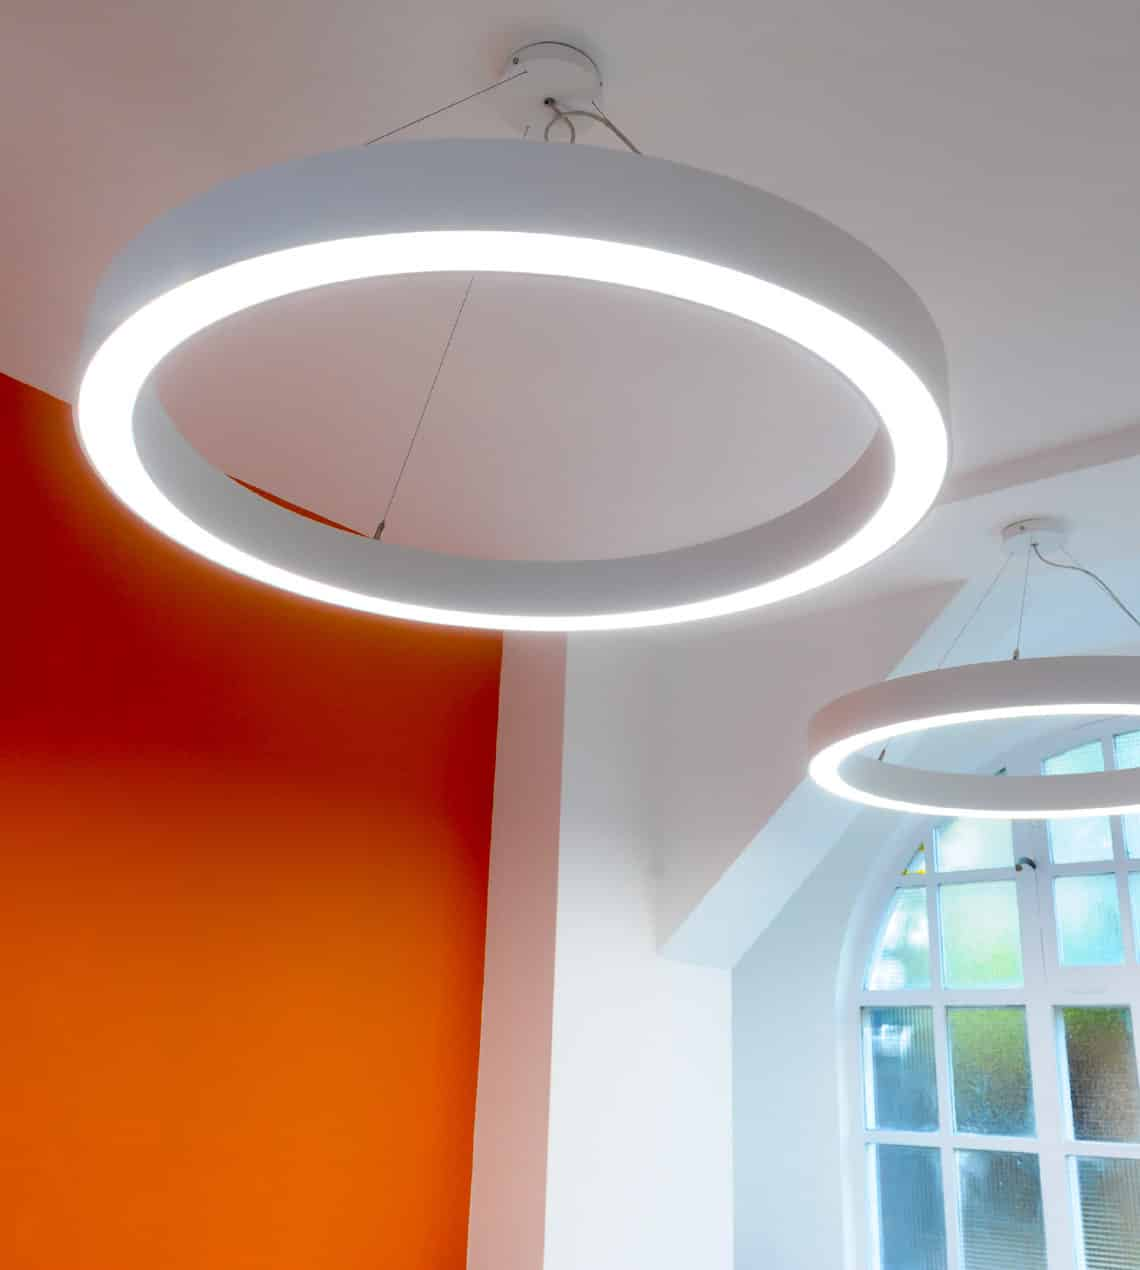 commercial suspended halo lighting design